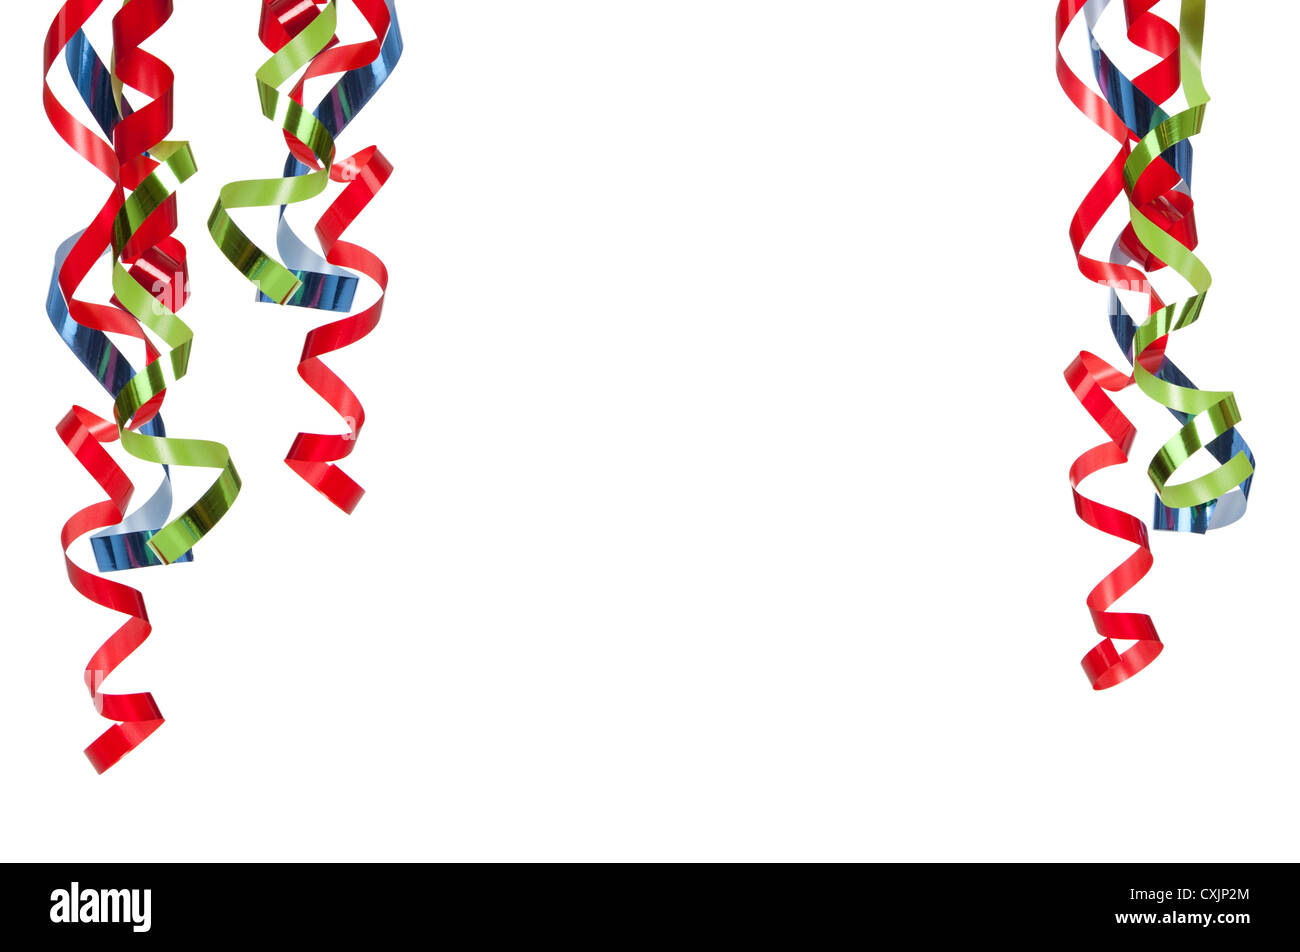 Curly Christmas ribbon on a white background with copy space - Stock Image